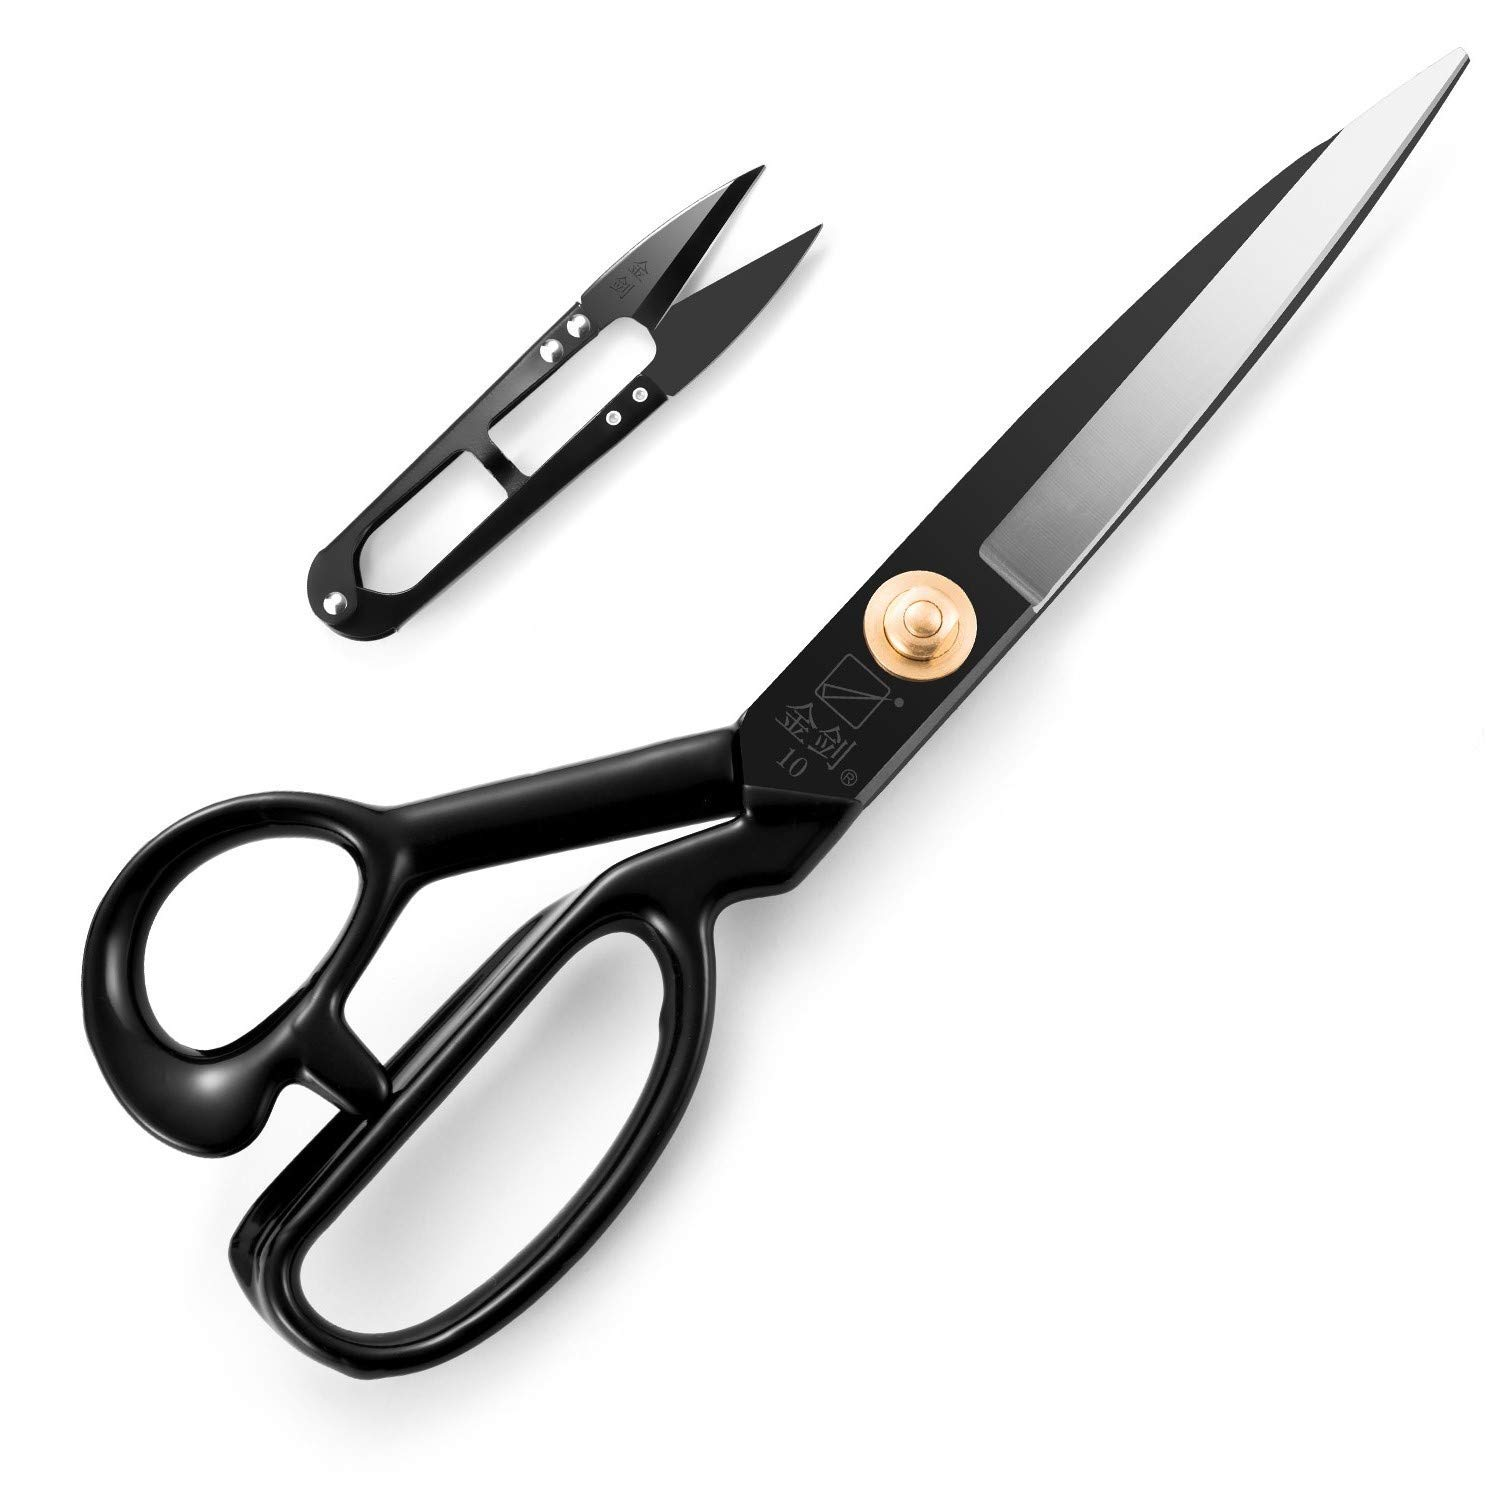 Tijera : Sewing Scissors, 10 Inch Fabric Dressmaking Scis...